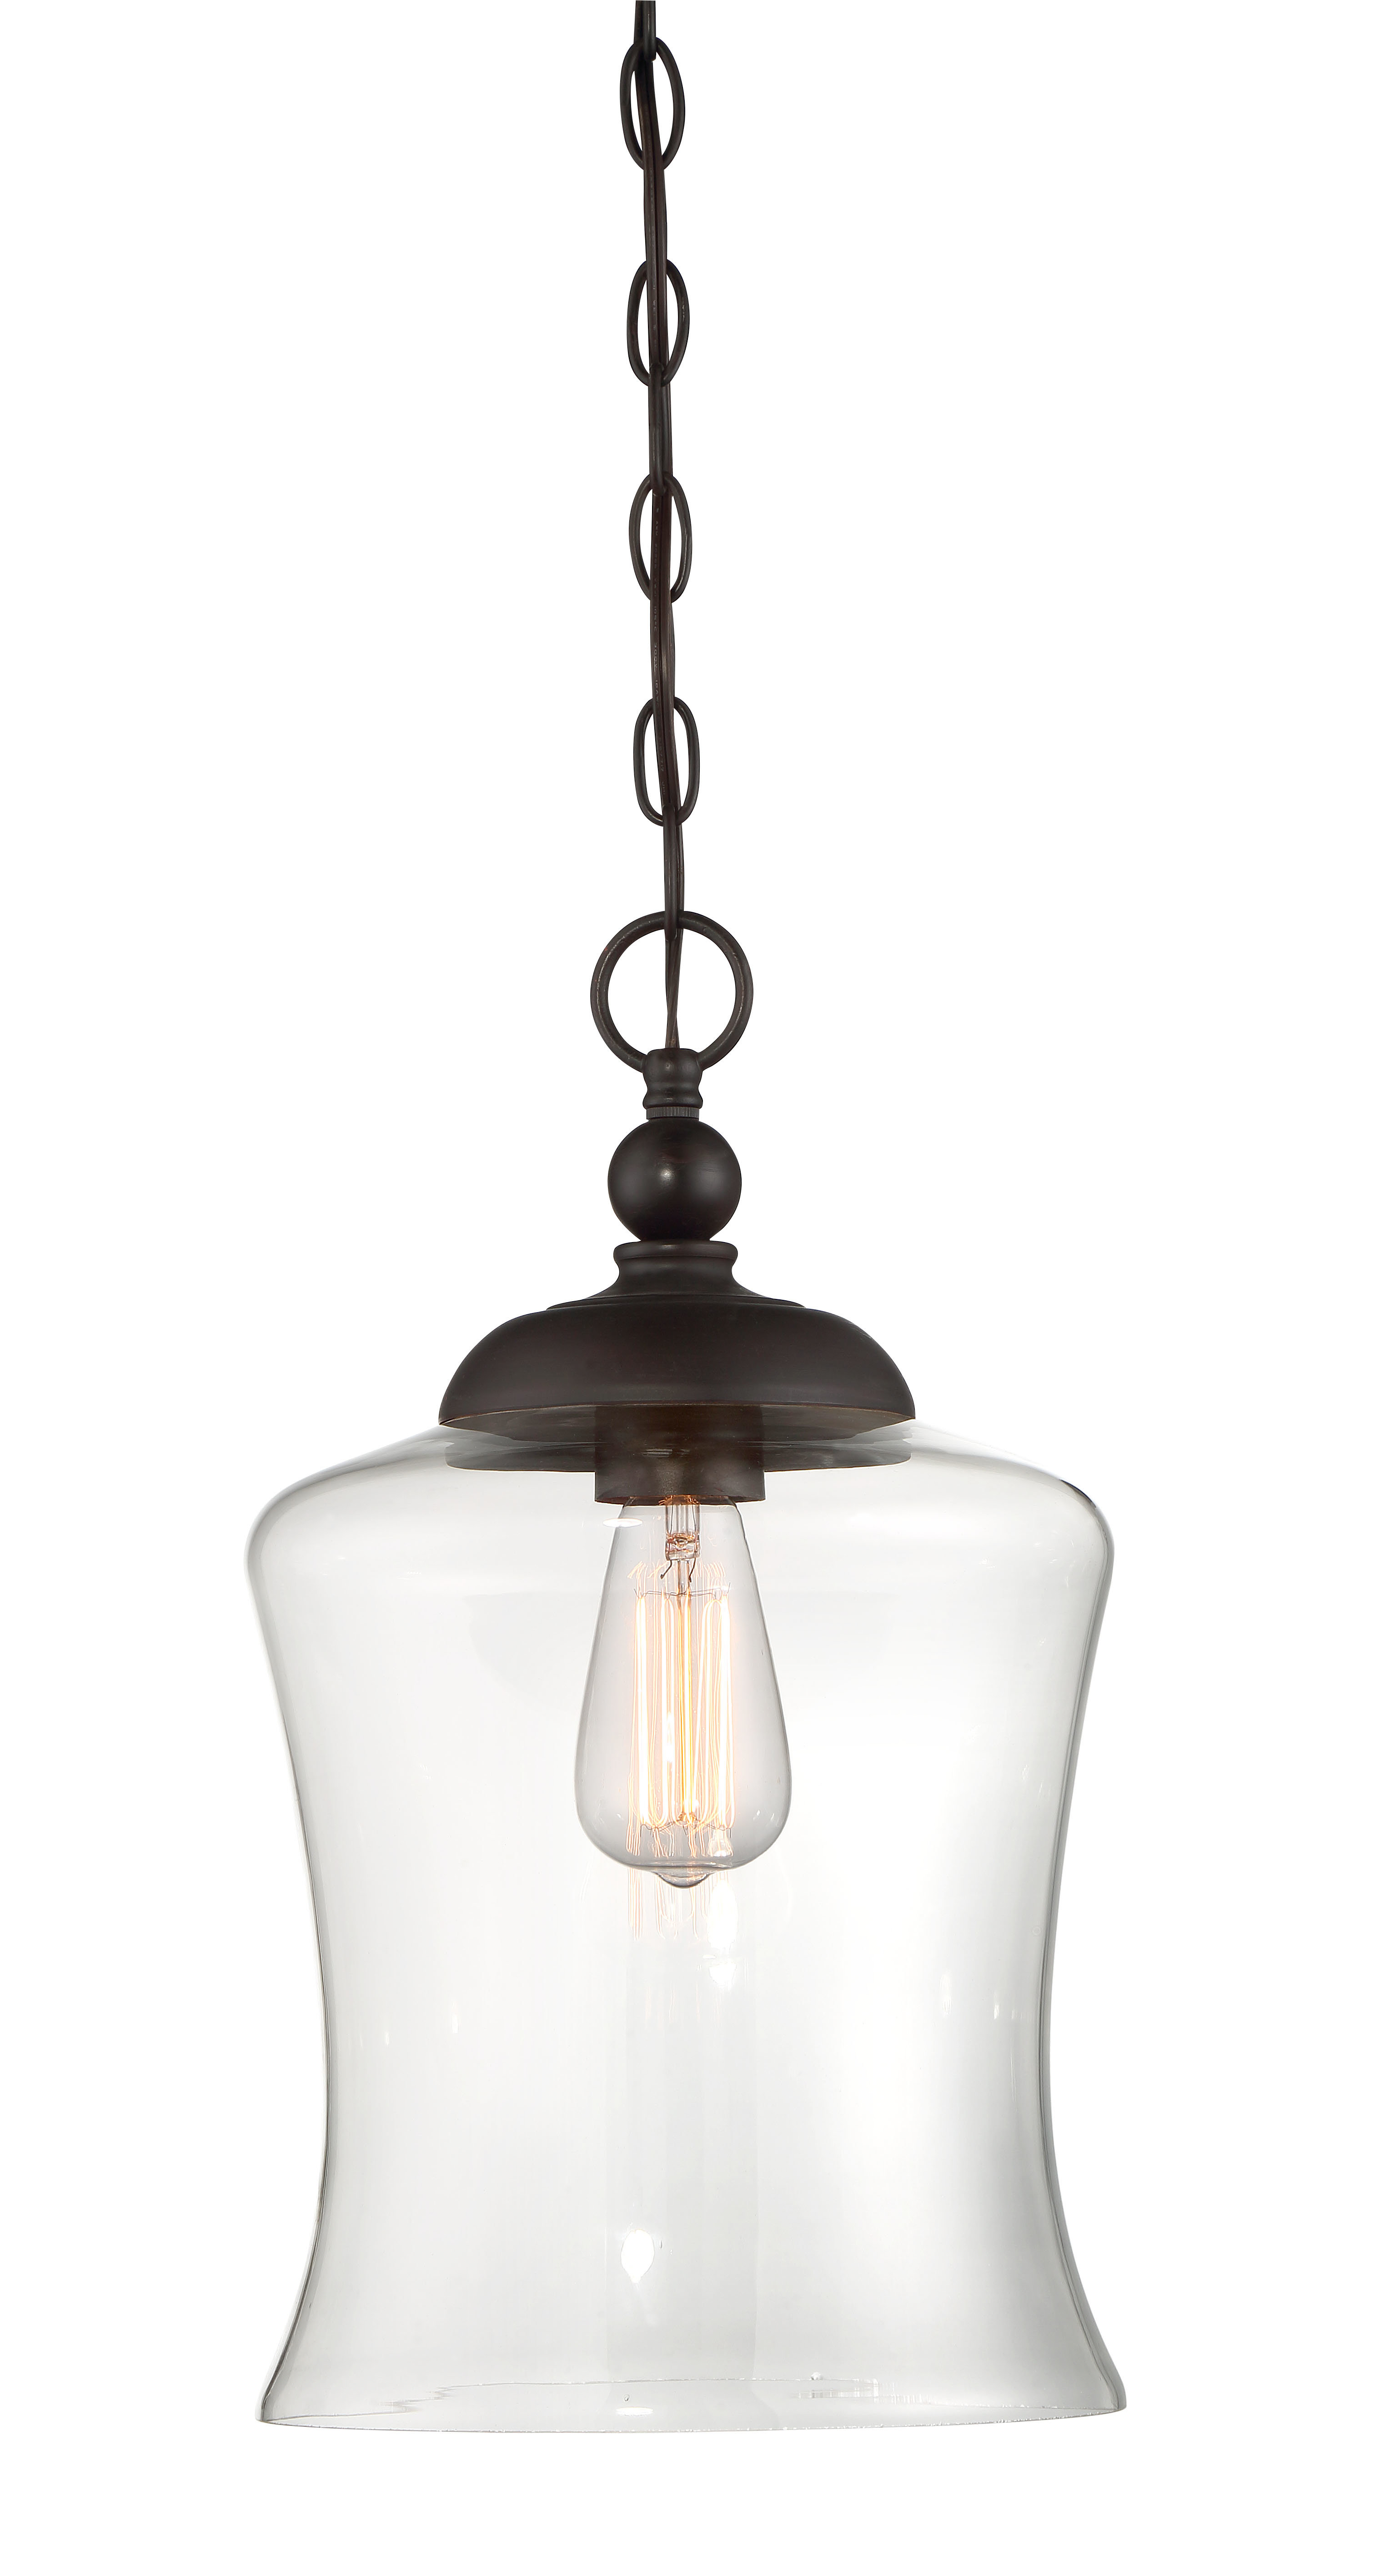 Sargent Light Bell Pendant | Wayfair With Sargent 1 Light Single Bell Pendants (View 27 of 30)